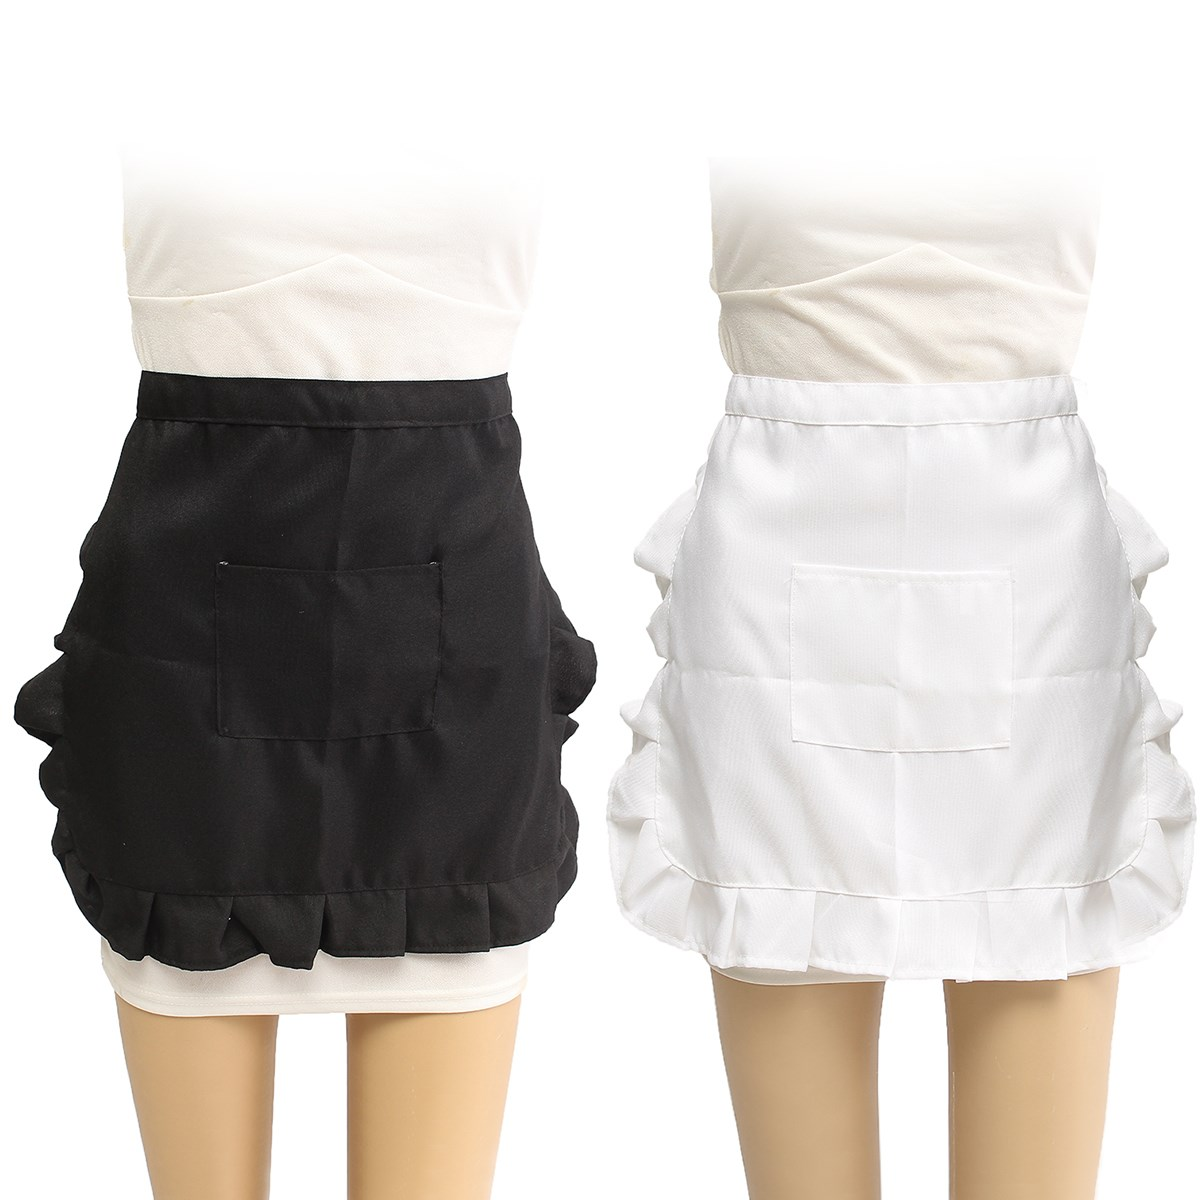 White apron specialty sandwiches - Waist Apron Restaurant Bar Half Body Aprons Waitress Waiter Kitchen Chef Household Cleaning Cooking Apron Tools